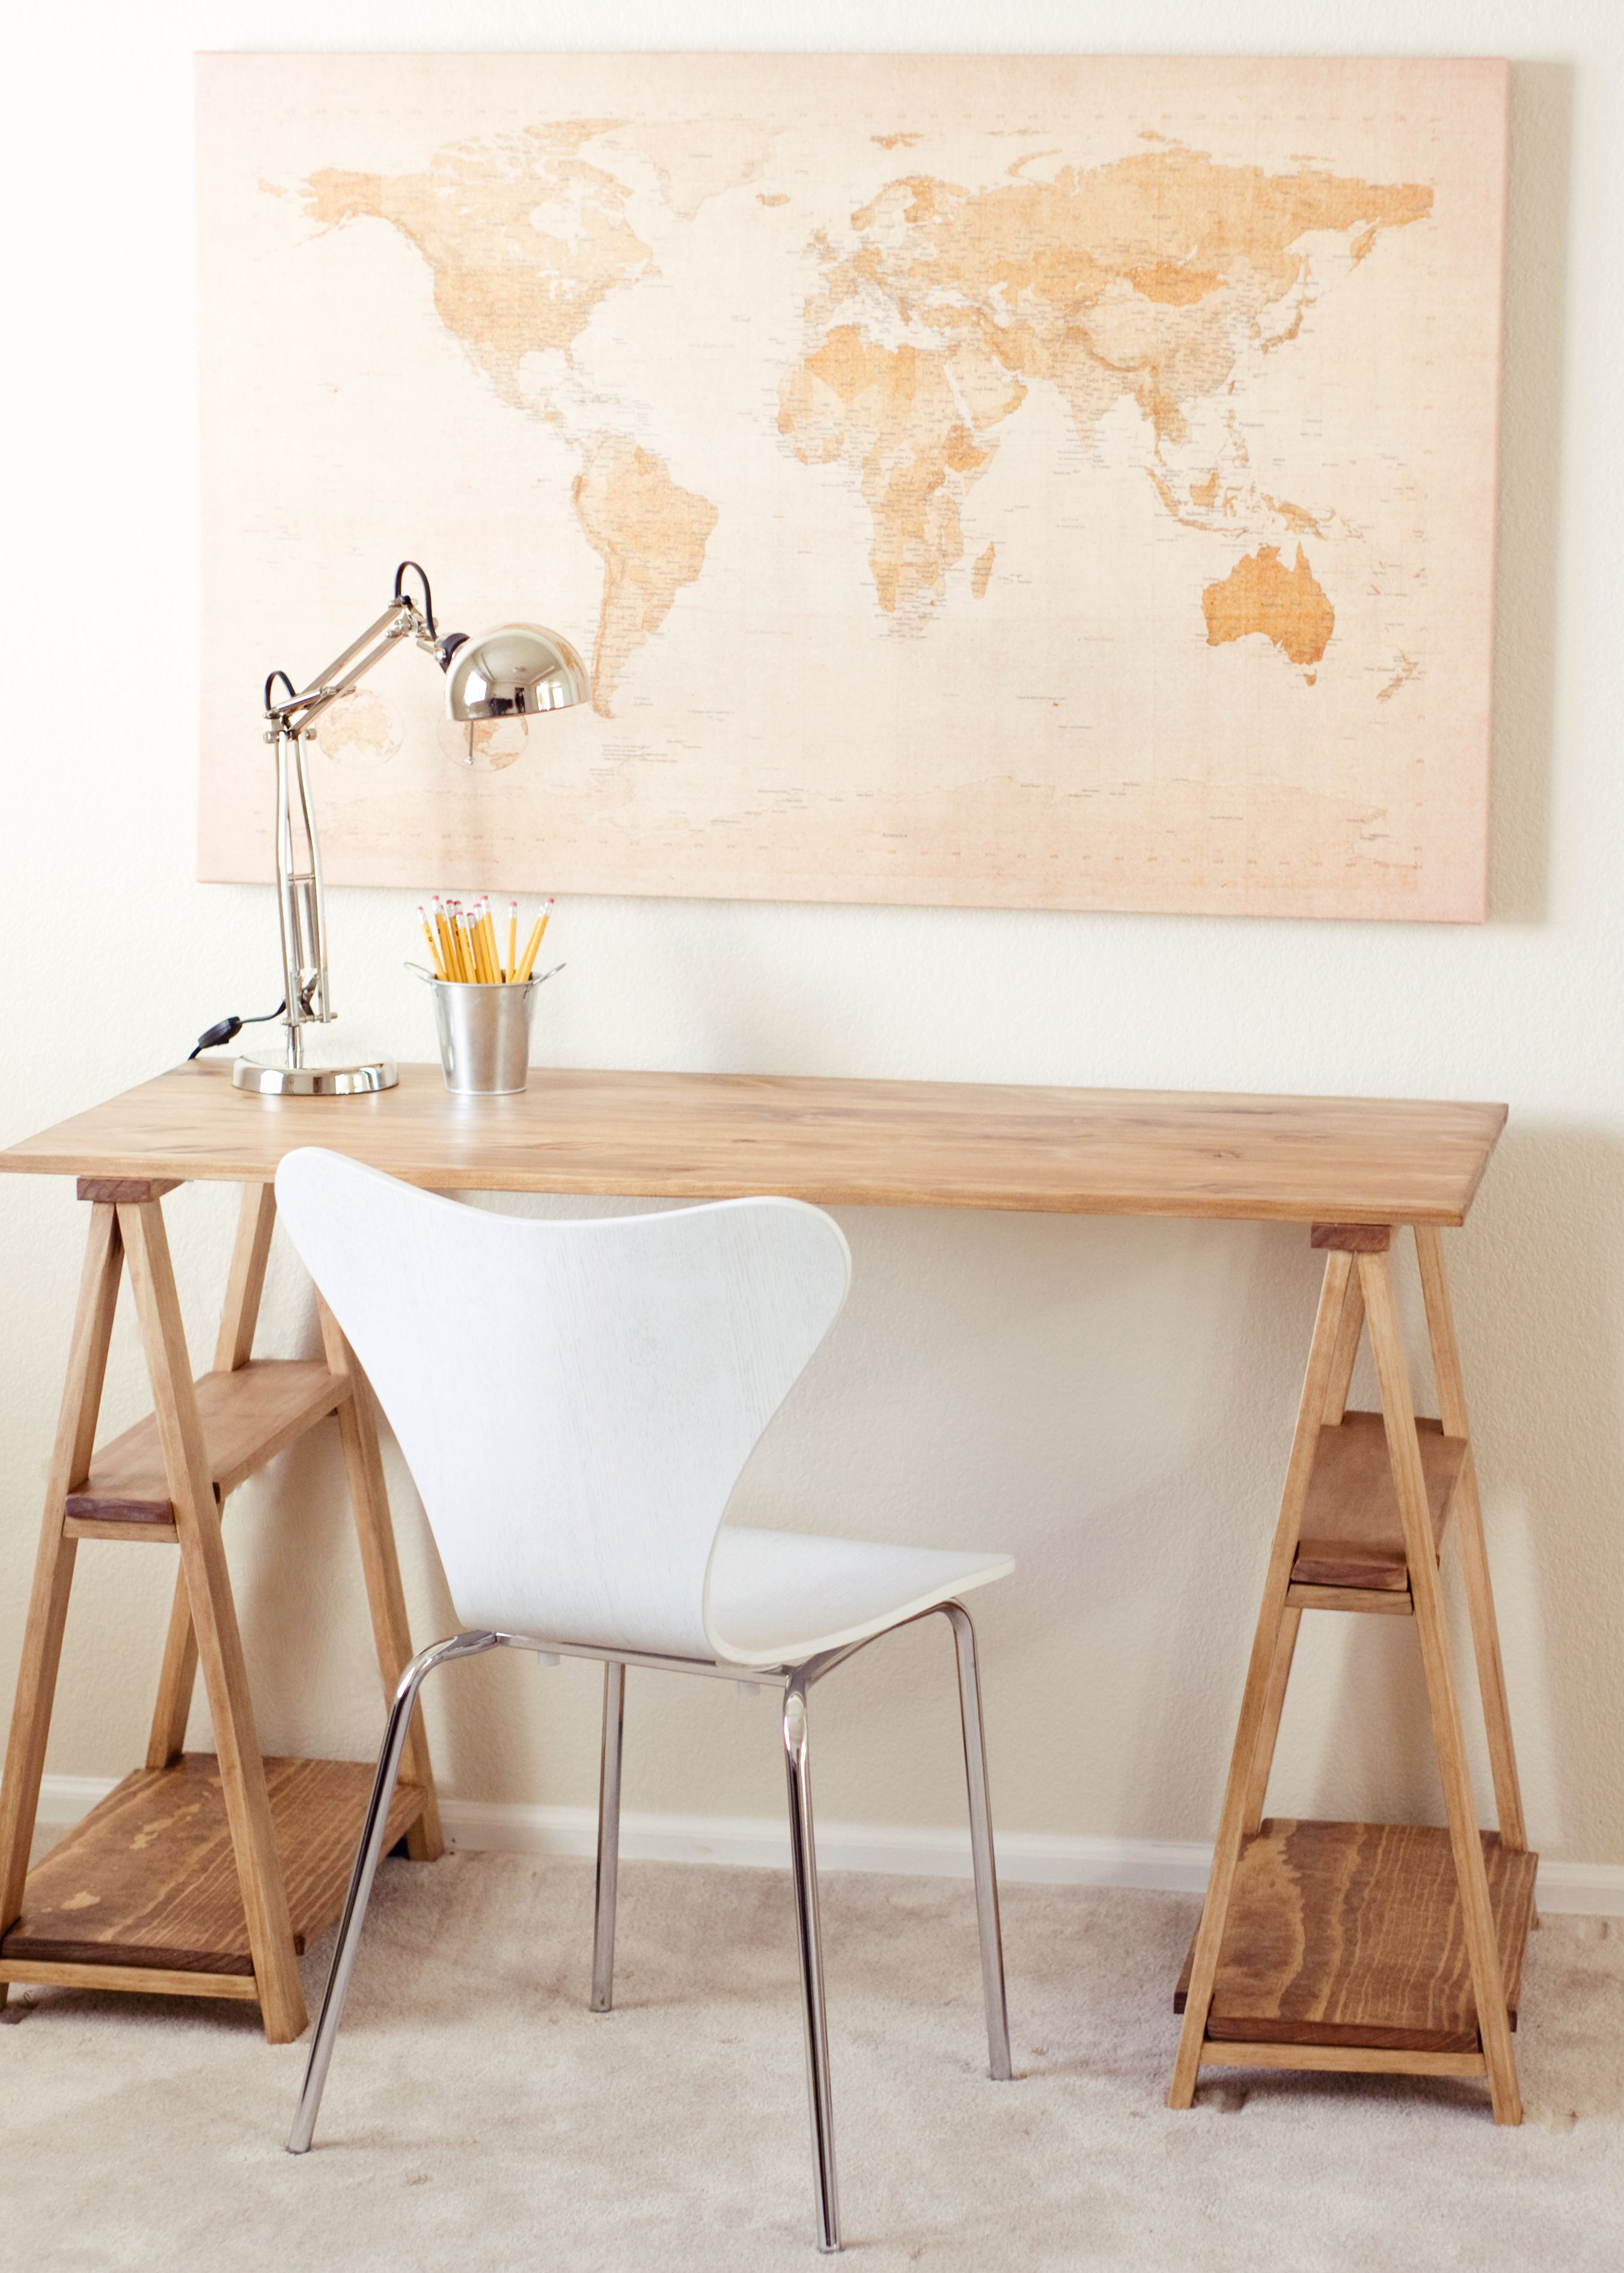 Sawhorse desk do it yourself home projects from ana white home sawhorse desk diy projects solutioingenieria Choice Image